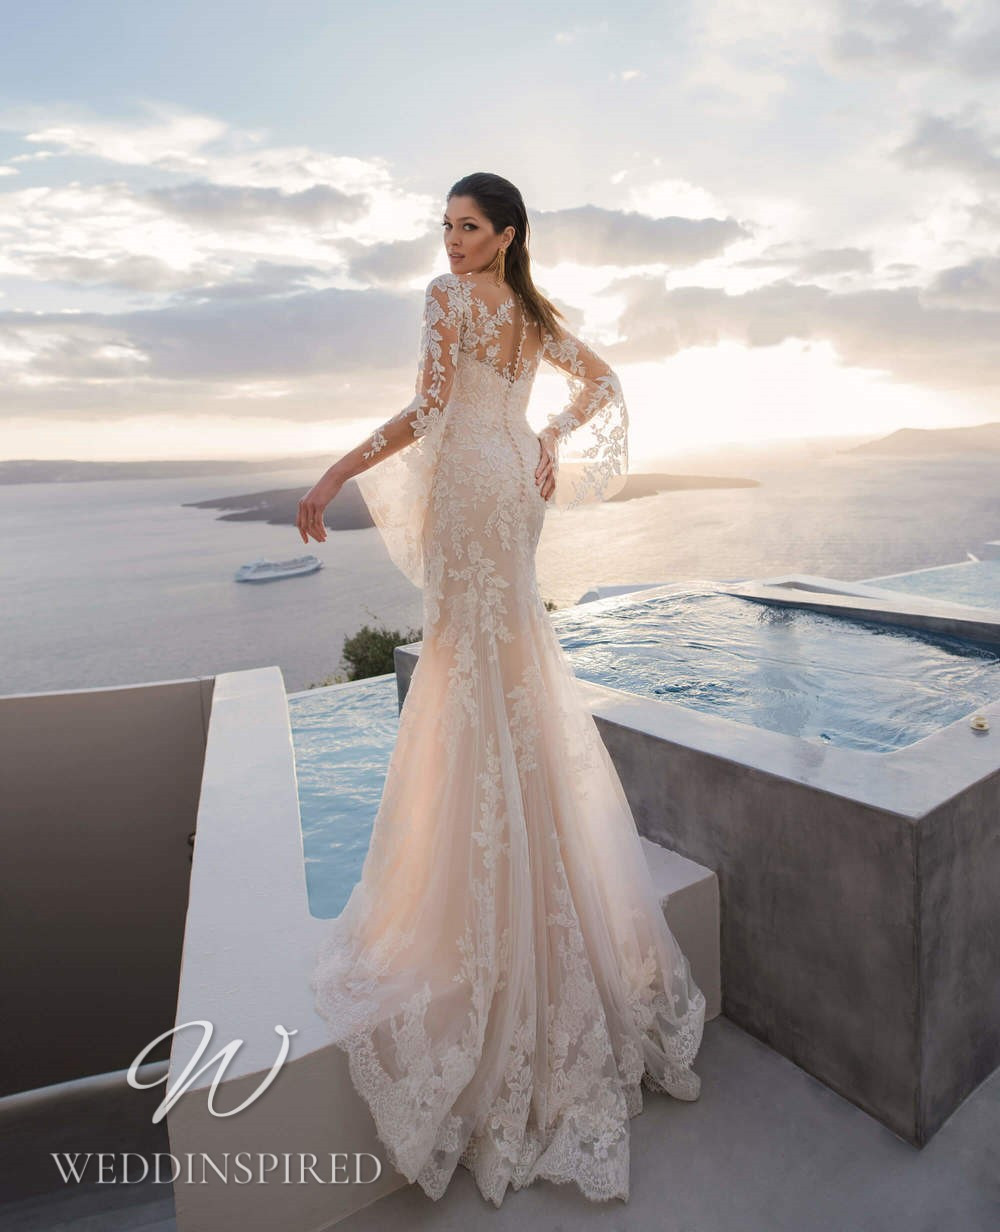 A Blunny 2021 blush lace mermaid wedding dress with long sleeves